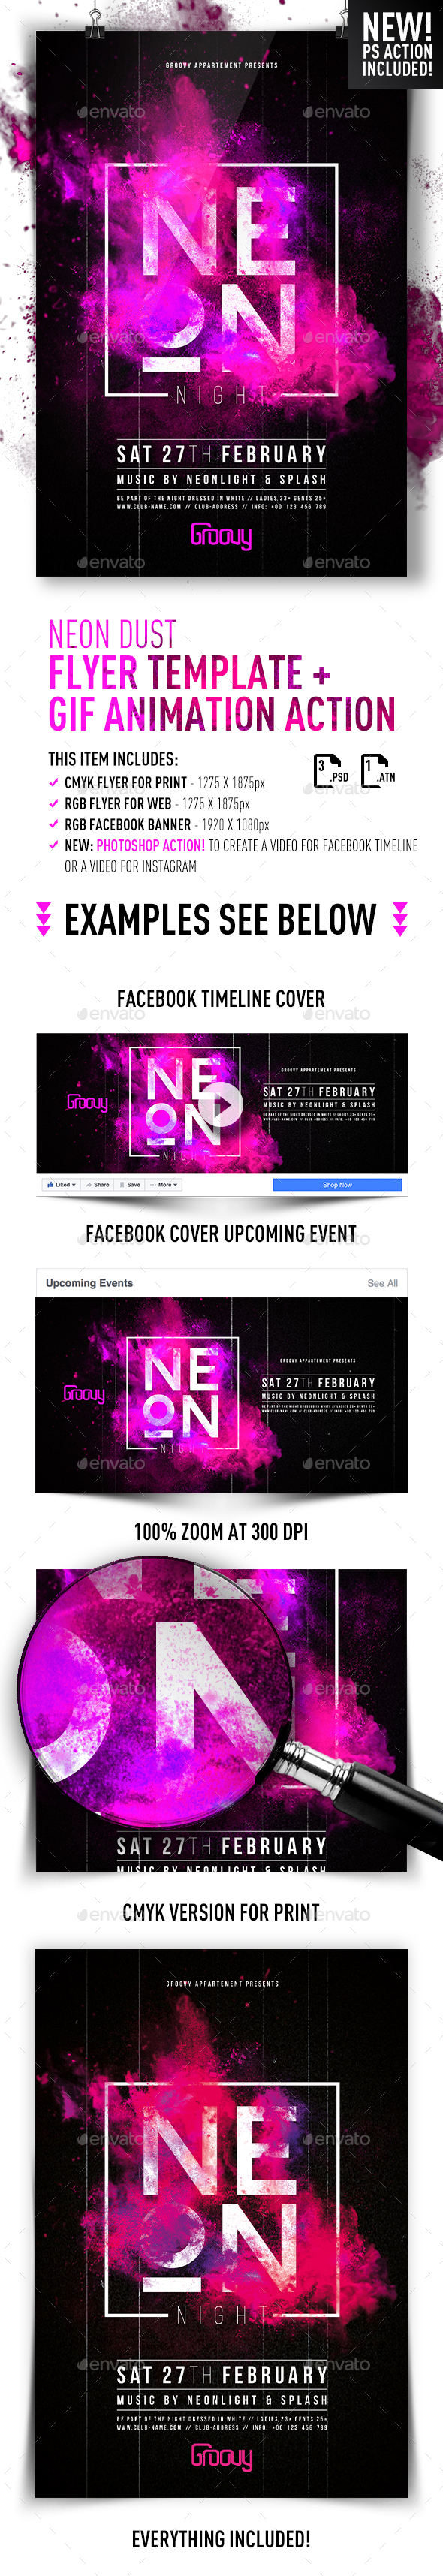 Neon Dusk Flyer + GIF Animation Action - Clubs & Parties Events